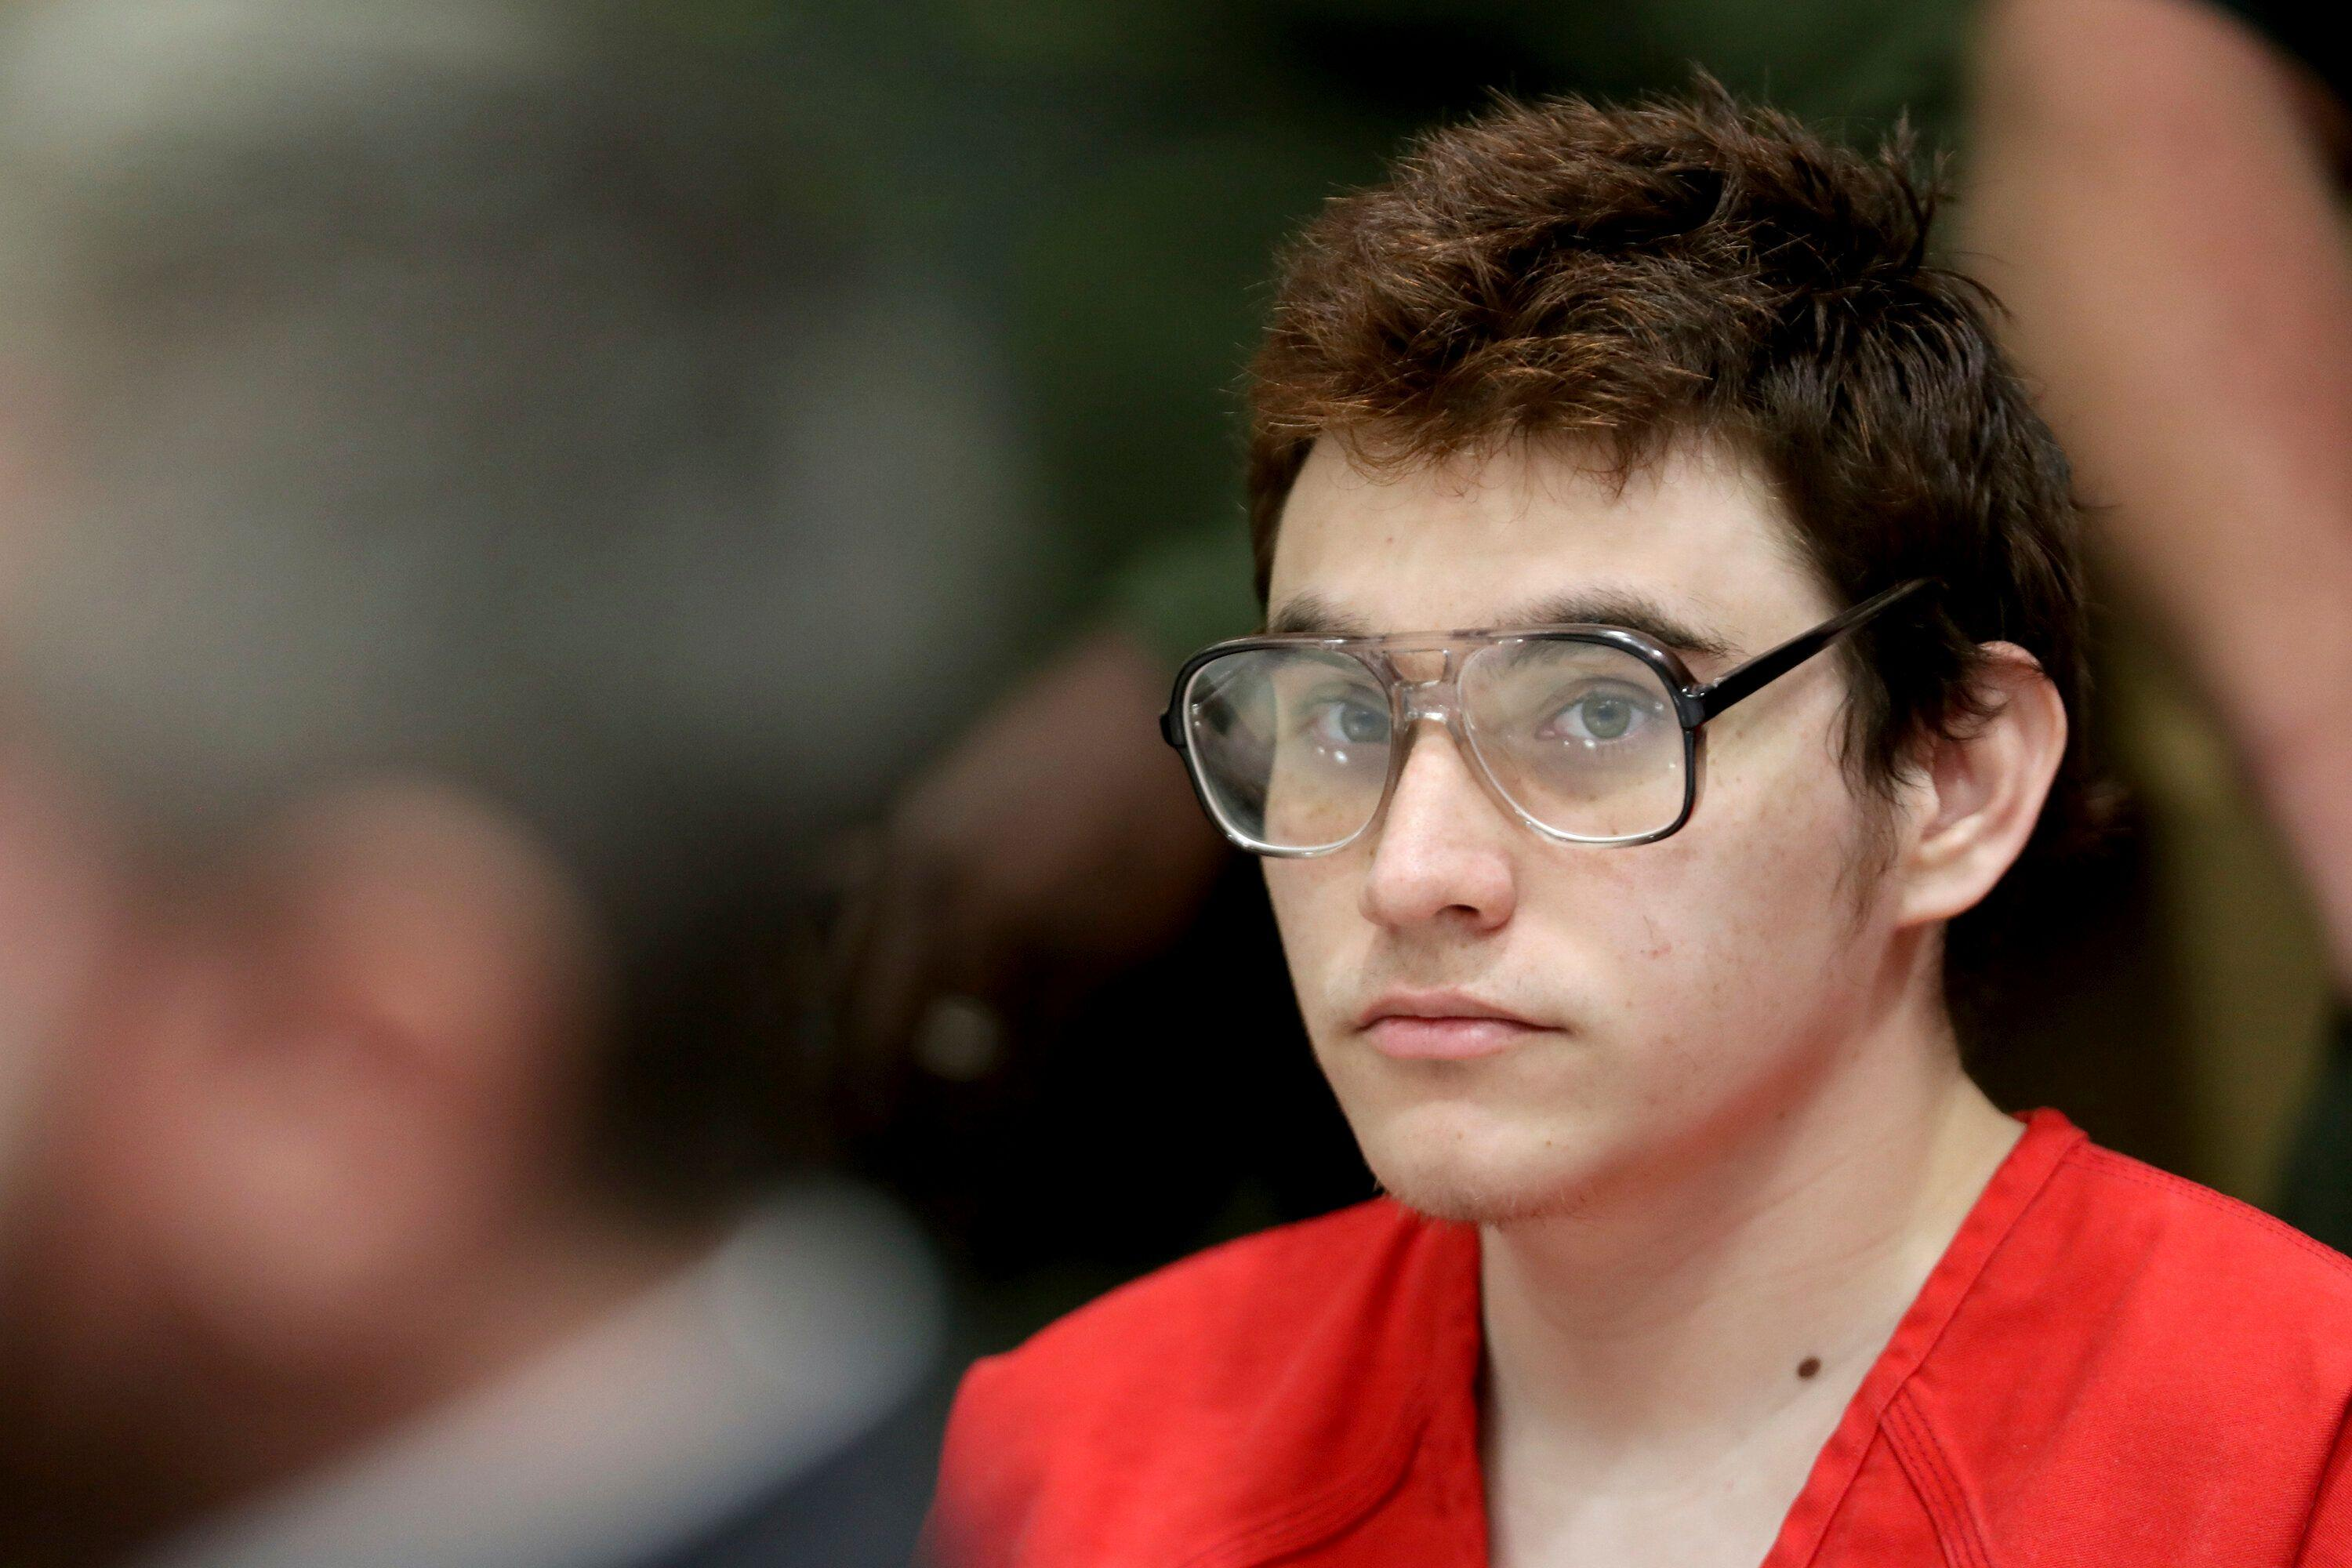 News on the move: Parkland killer to get $430,000 life insurance benefit